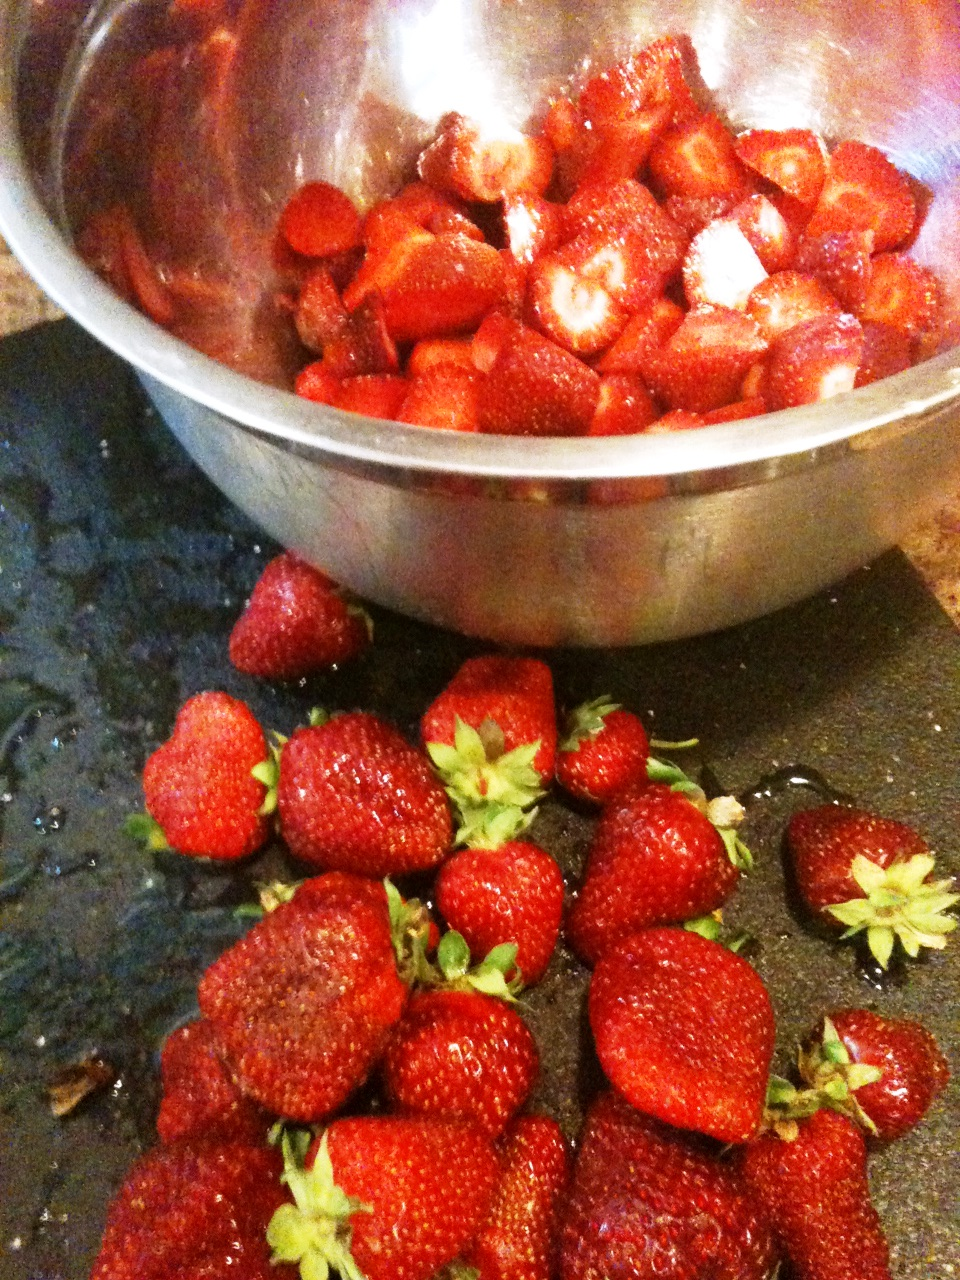 strawberries may 29 2013